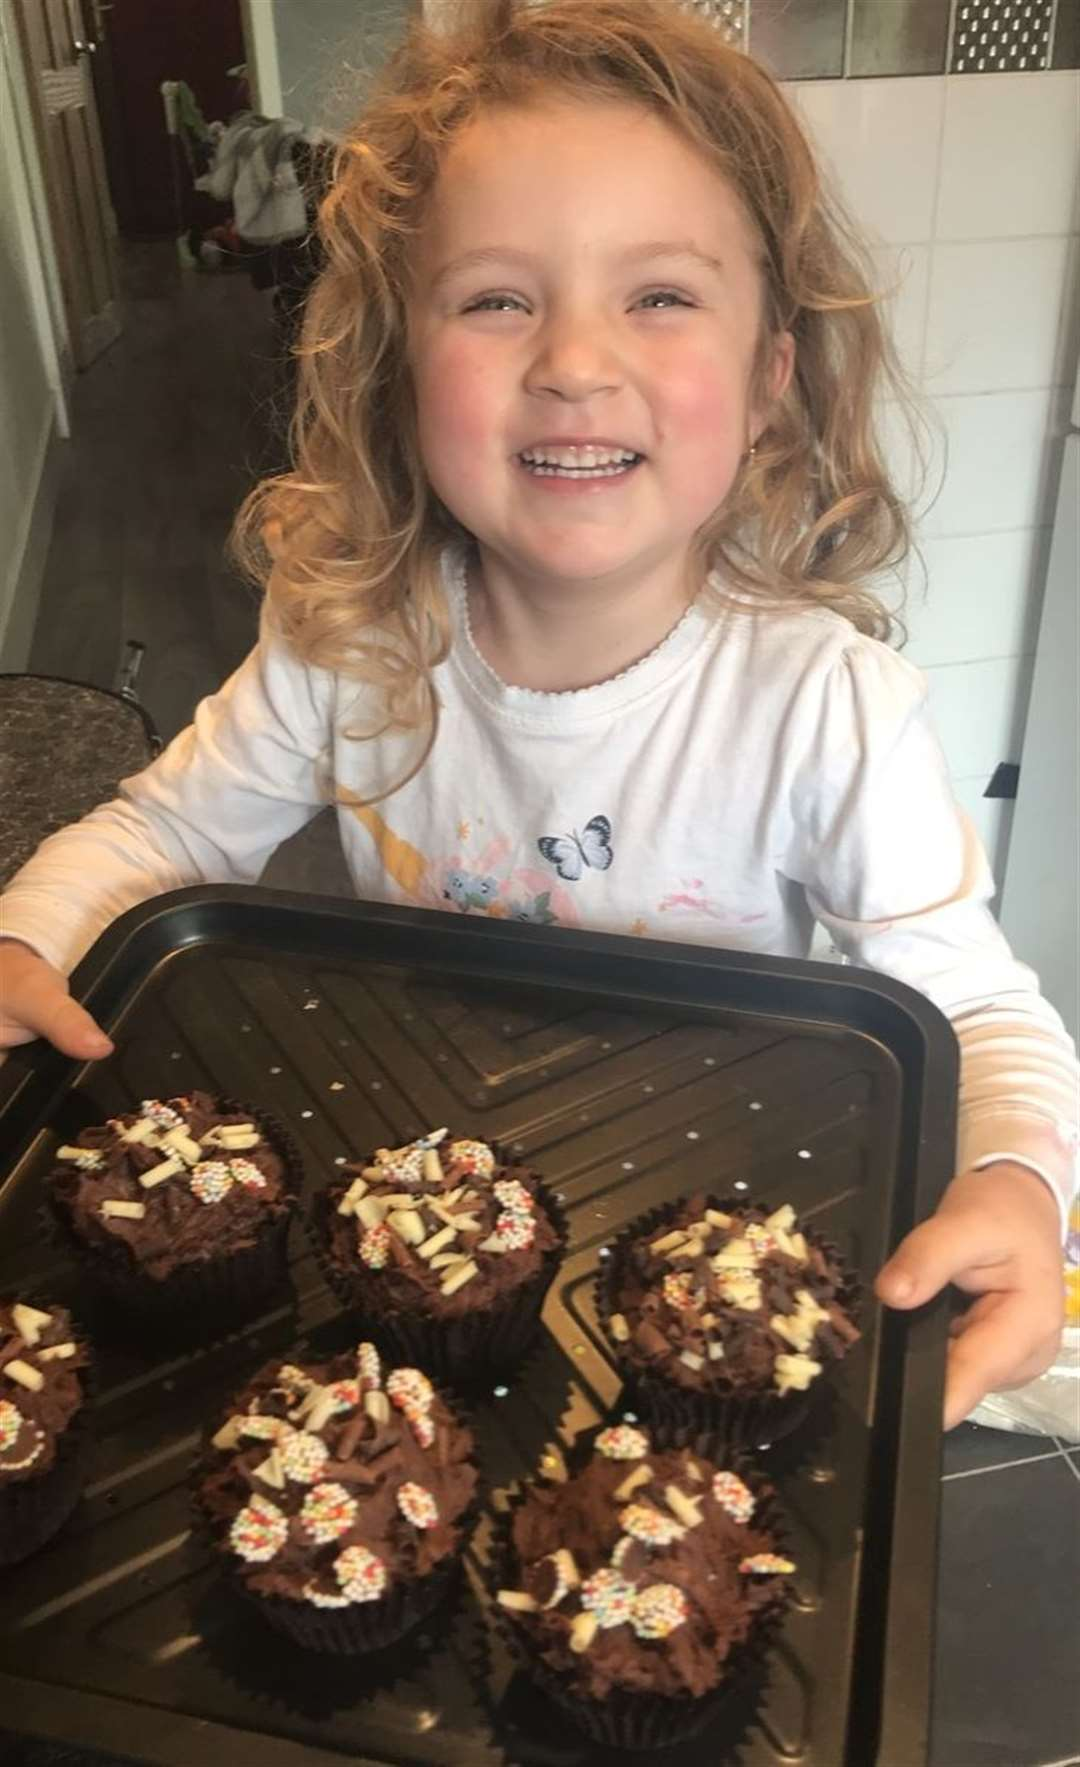 Lillia Halls made cakes for her grandad to leave on his doorstep for his birthday